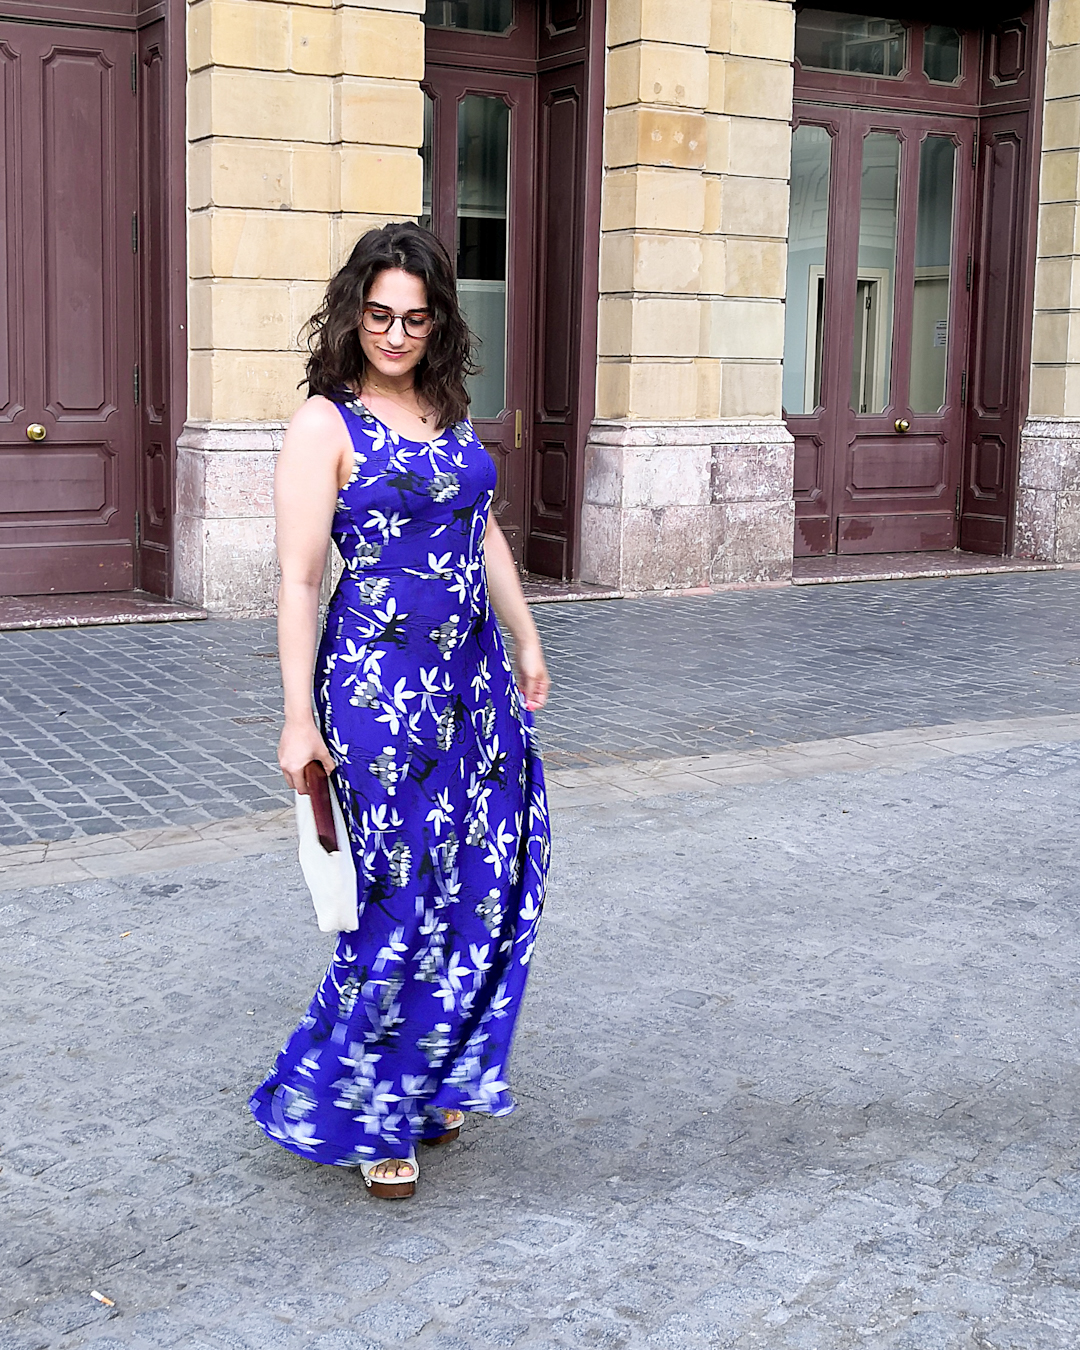 Katie wears a dark blue sleeveless maxi dress with a monkey and palm tree print. She's holding a white cotton clutch bag with a wooden handle, and wooden platform sandals with a cream leather upper. She's standing on a side street in Bilbao with a large old building behind her.